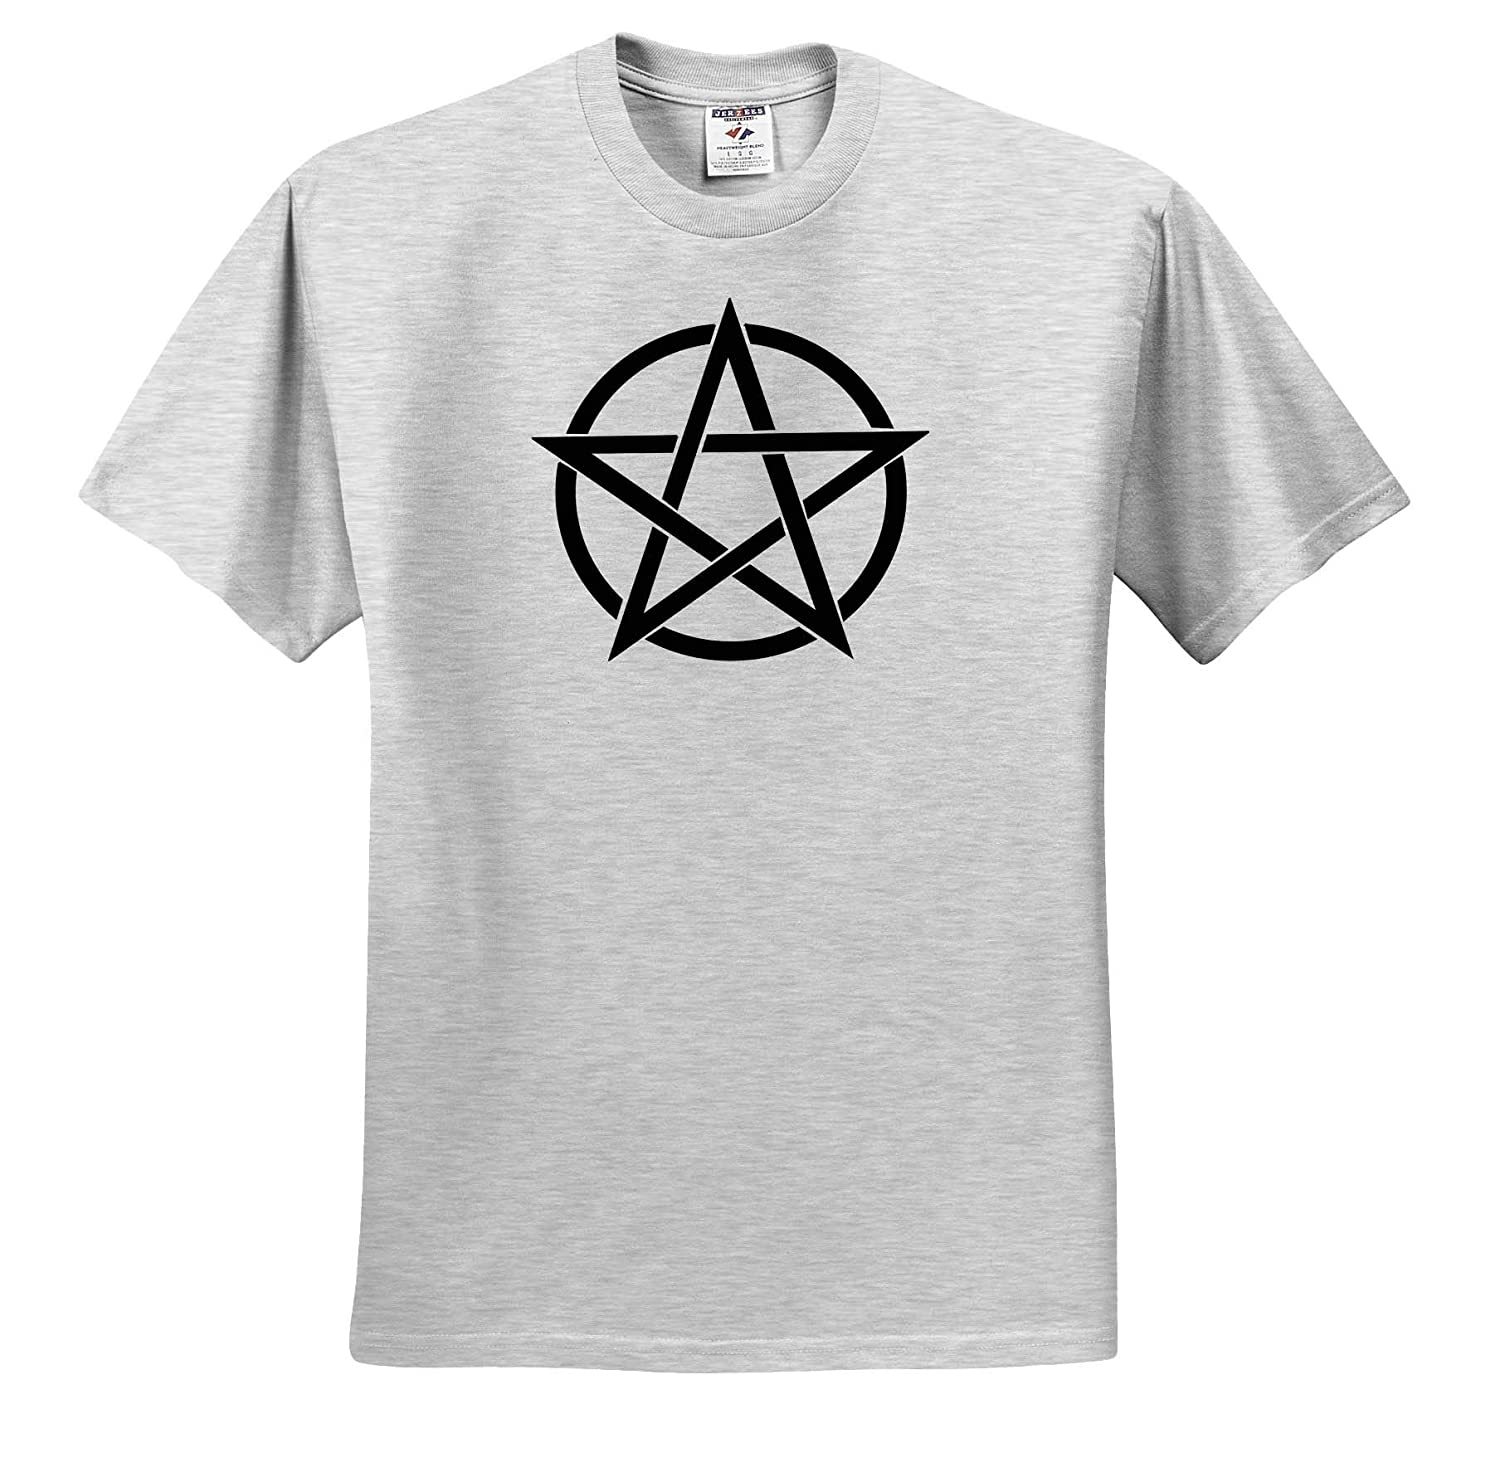 T-Shirts Black Pentagram on White Background 3dRose Cassie Peters Wicca